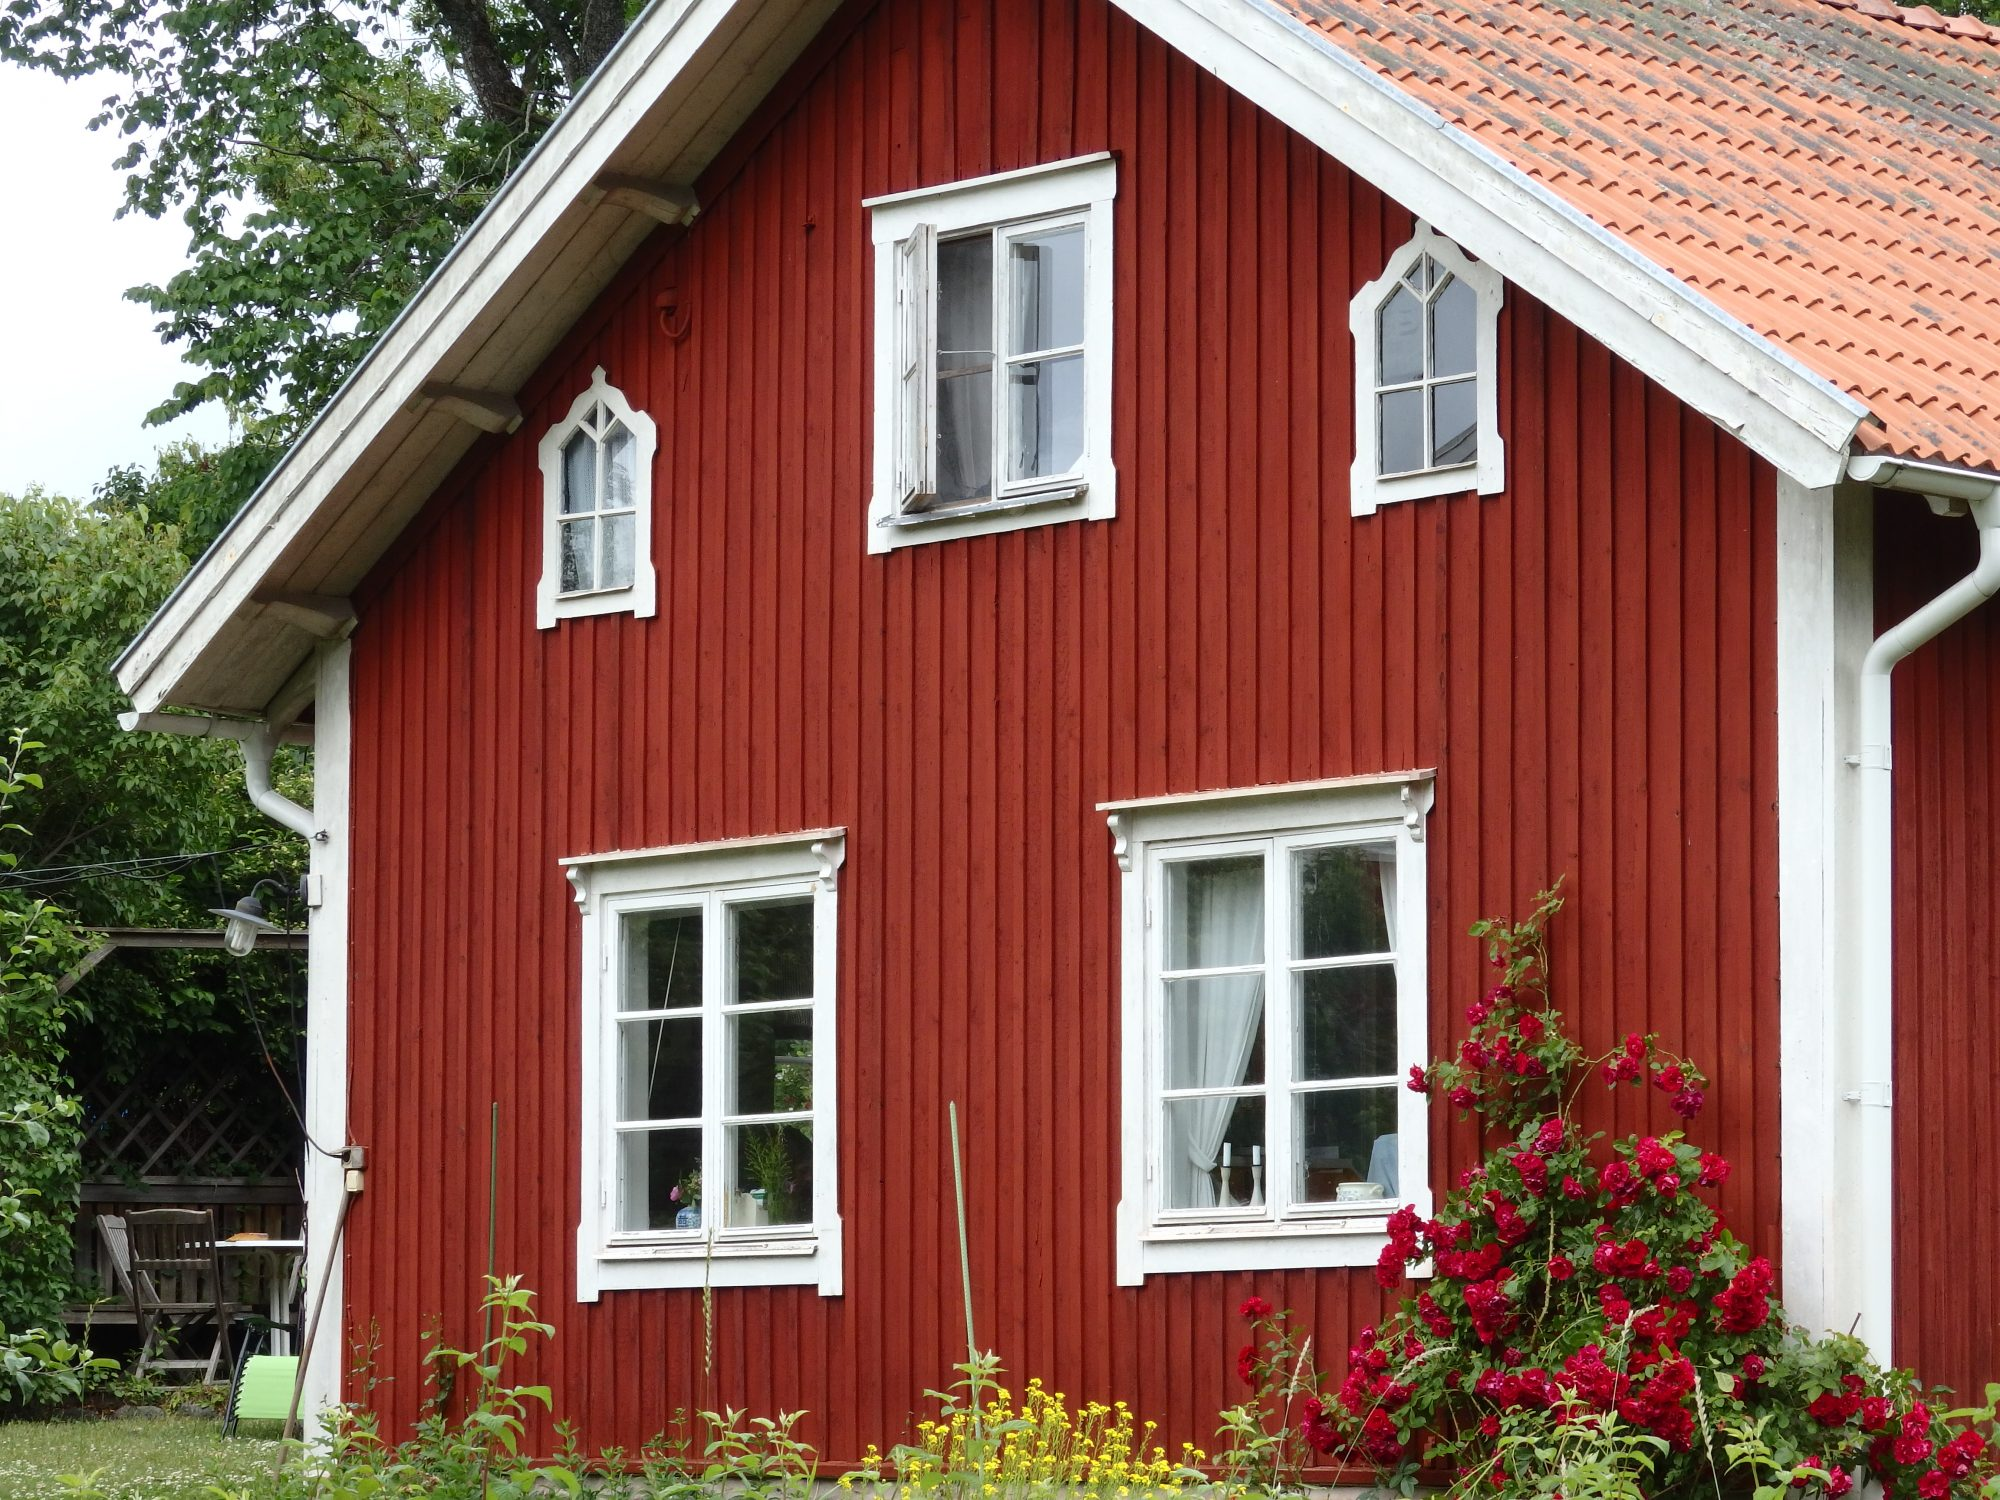 one of the historical buildings at Wira Bruk, in the characteristic red paint: Roslagen, Sweden